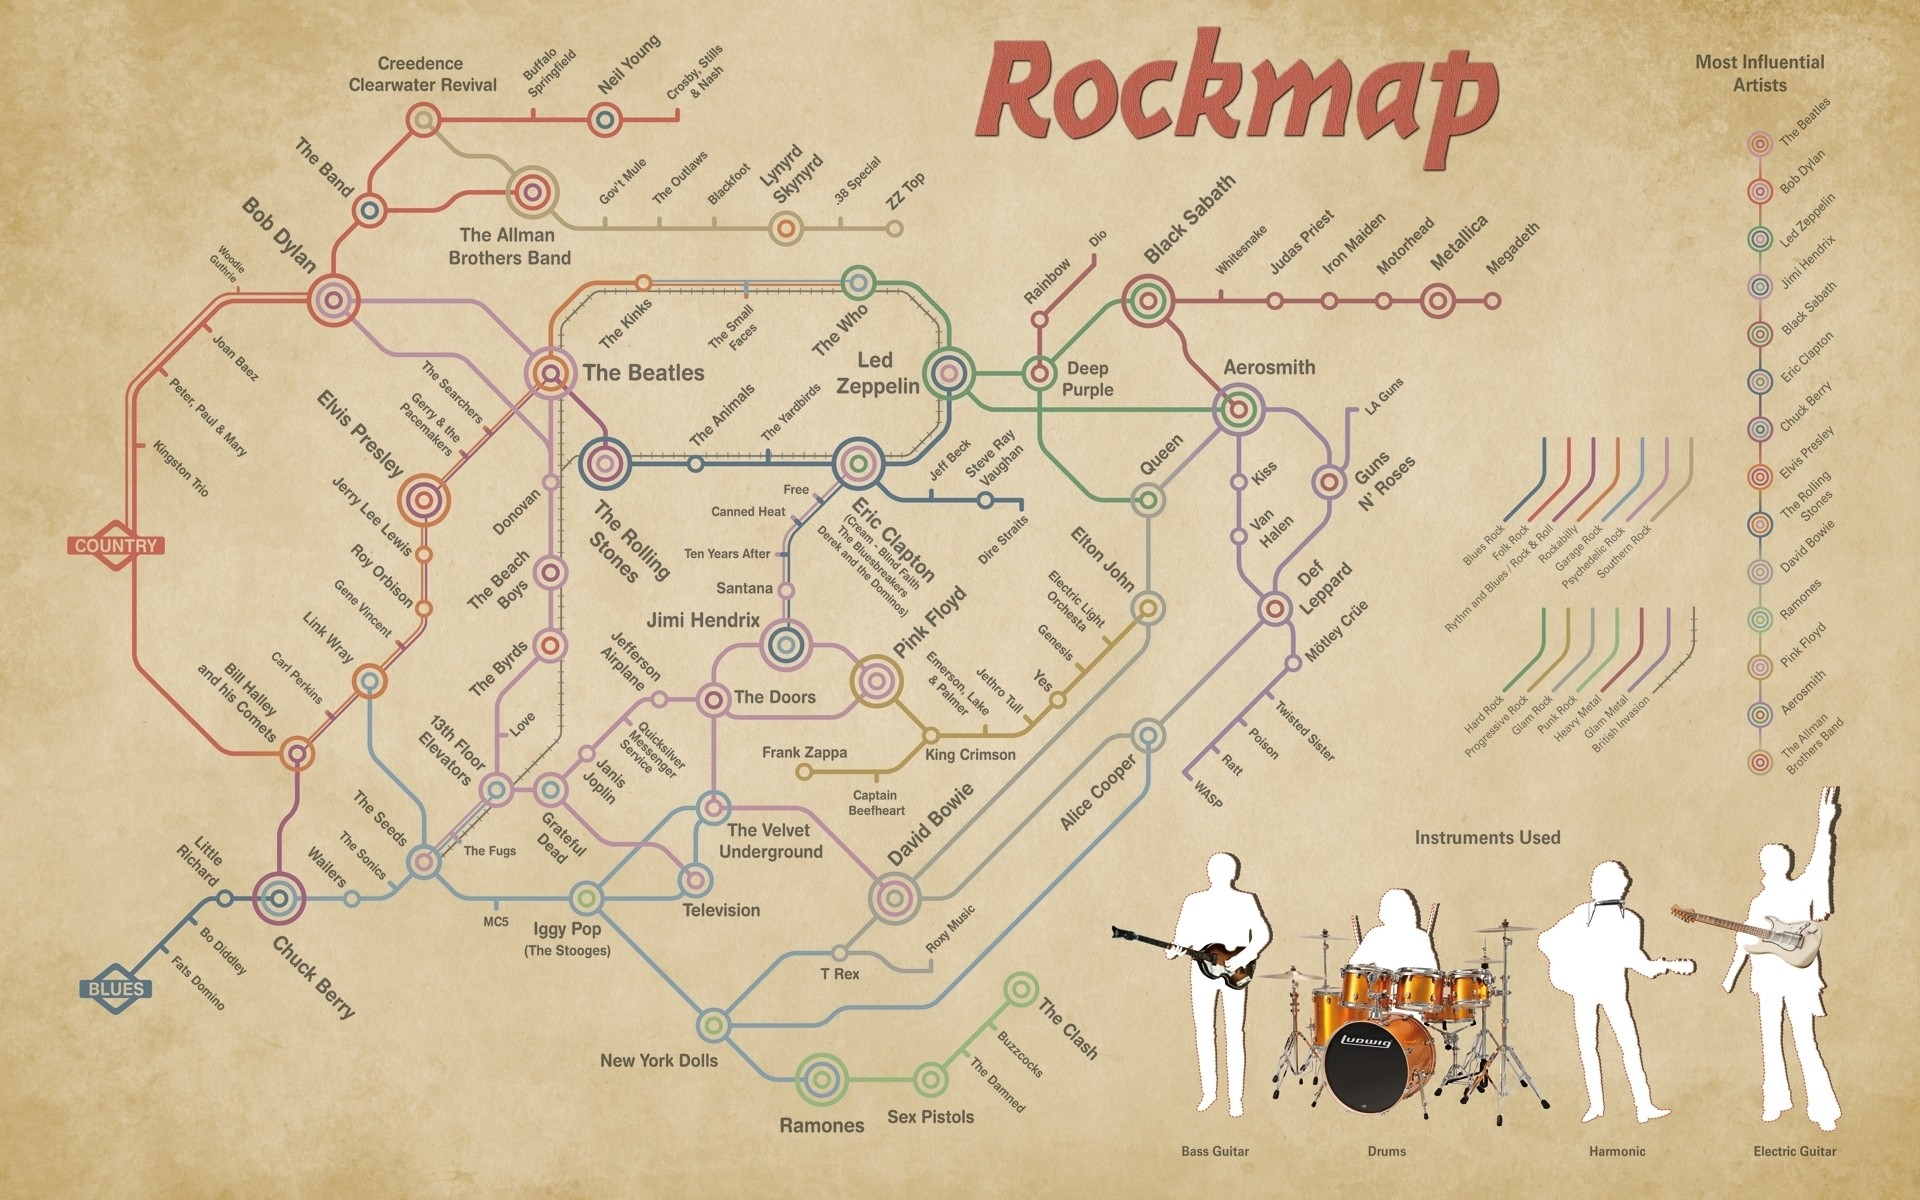 Map of Rock, creative and stylish wallpaper with a map of rock music.